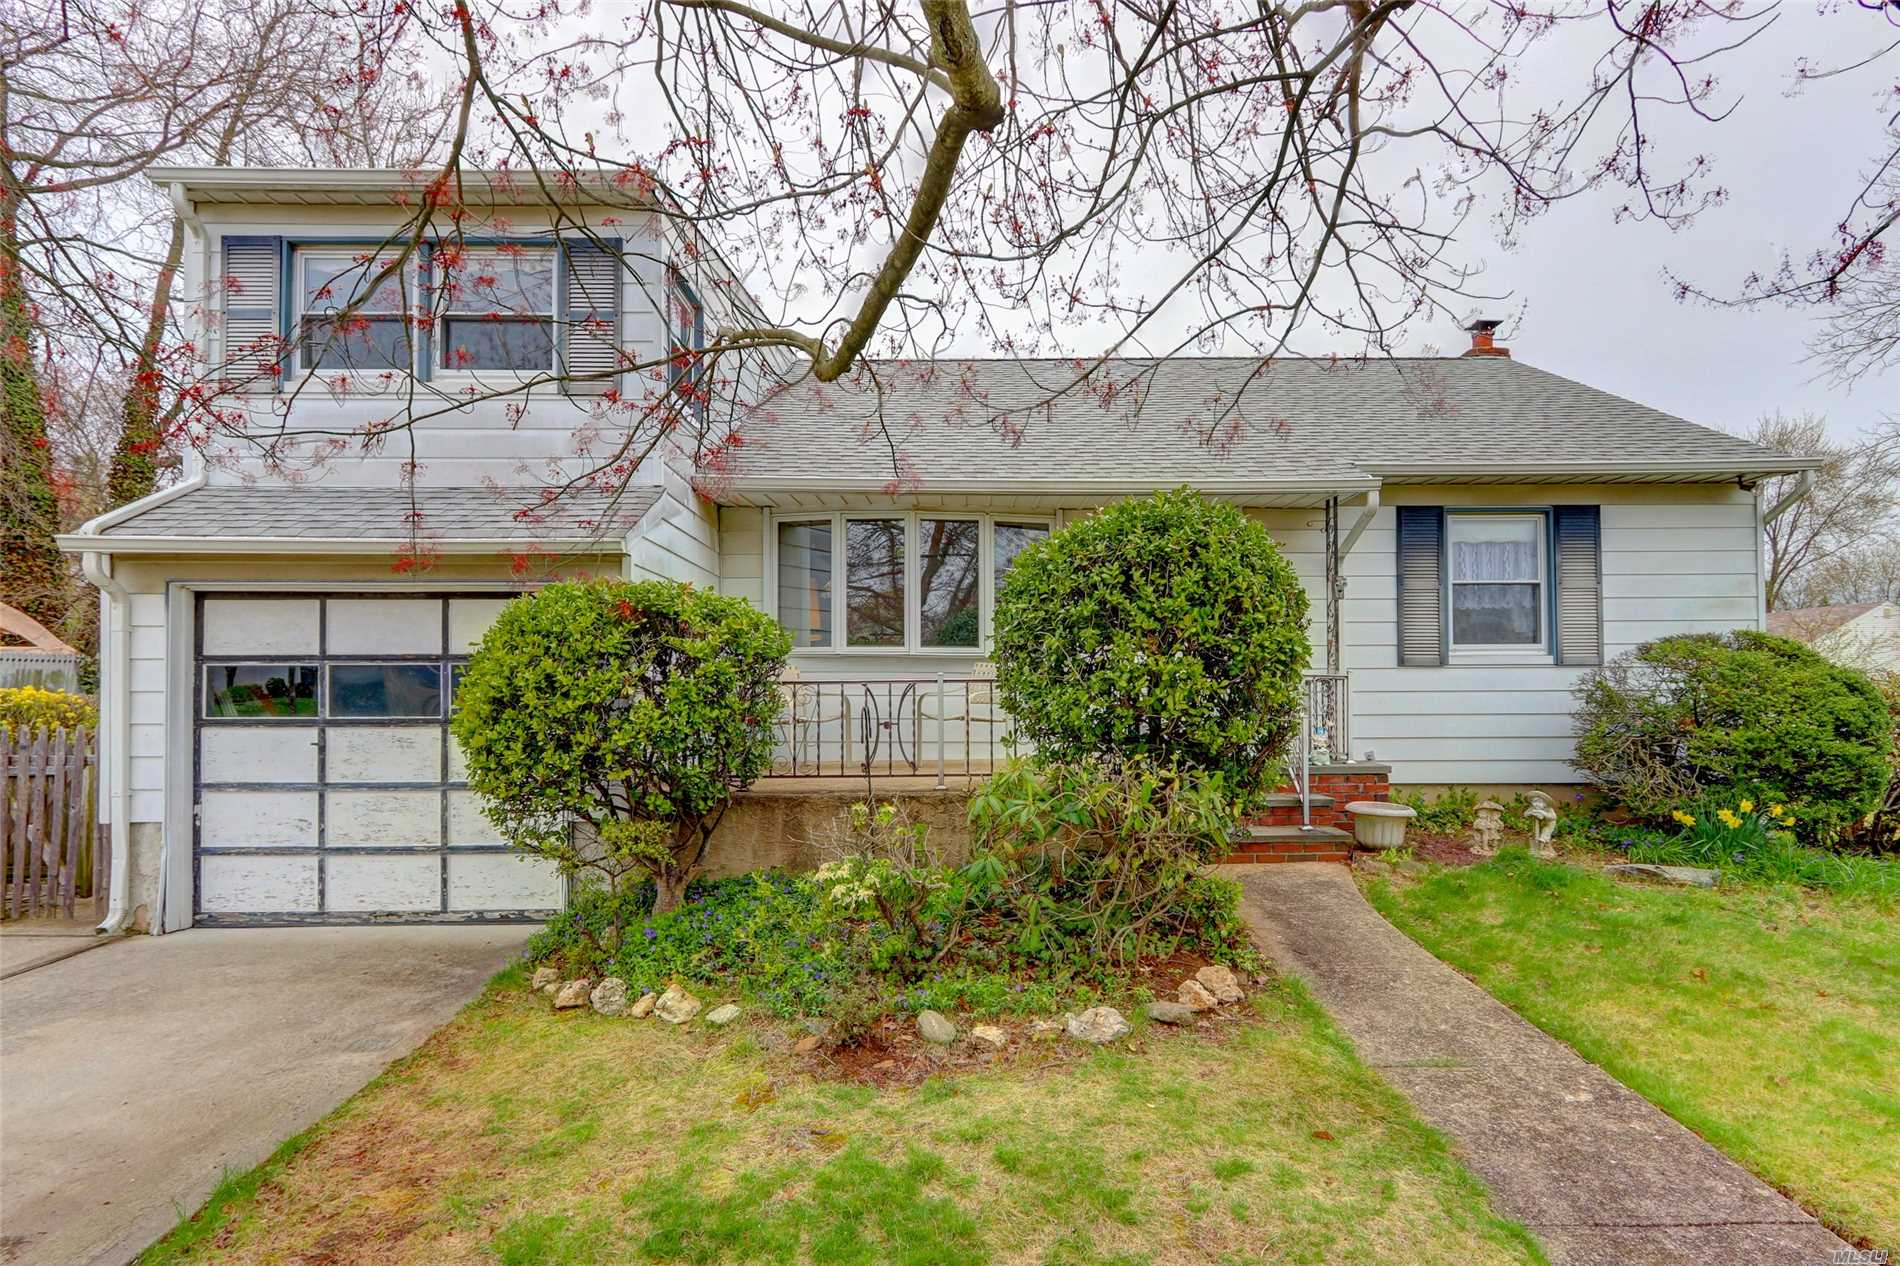 Charming 3 Br ranch on a quiet block in Island Trees school district! CAC, Gas heat, 7 zone inground sprinklers, updated bath, well-kept home with a private yard. Don't miss out on this fantastic opportunity!